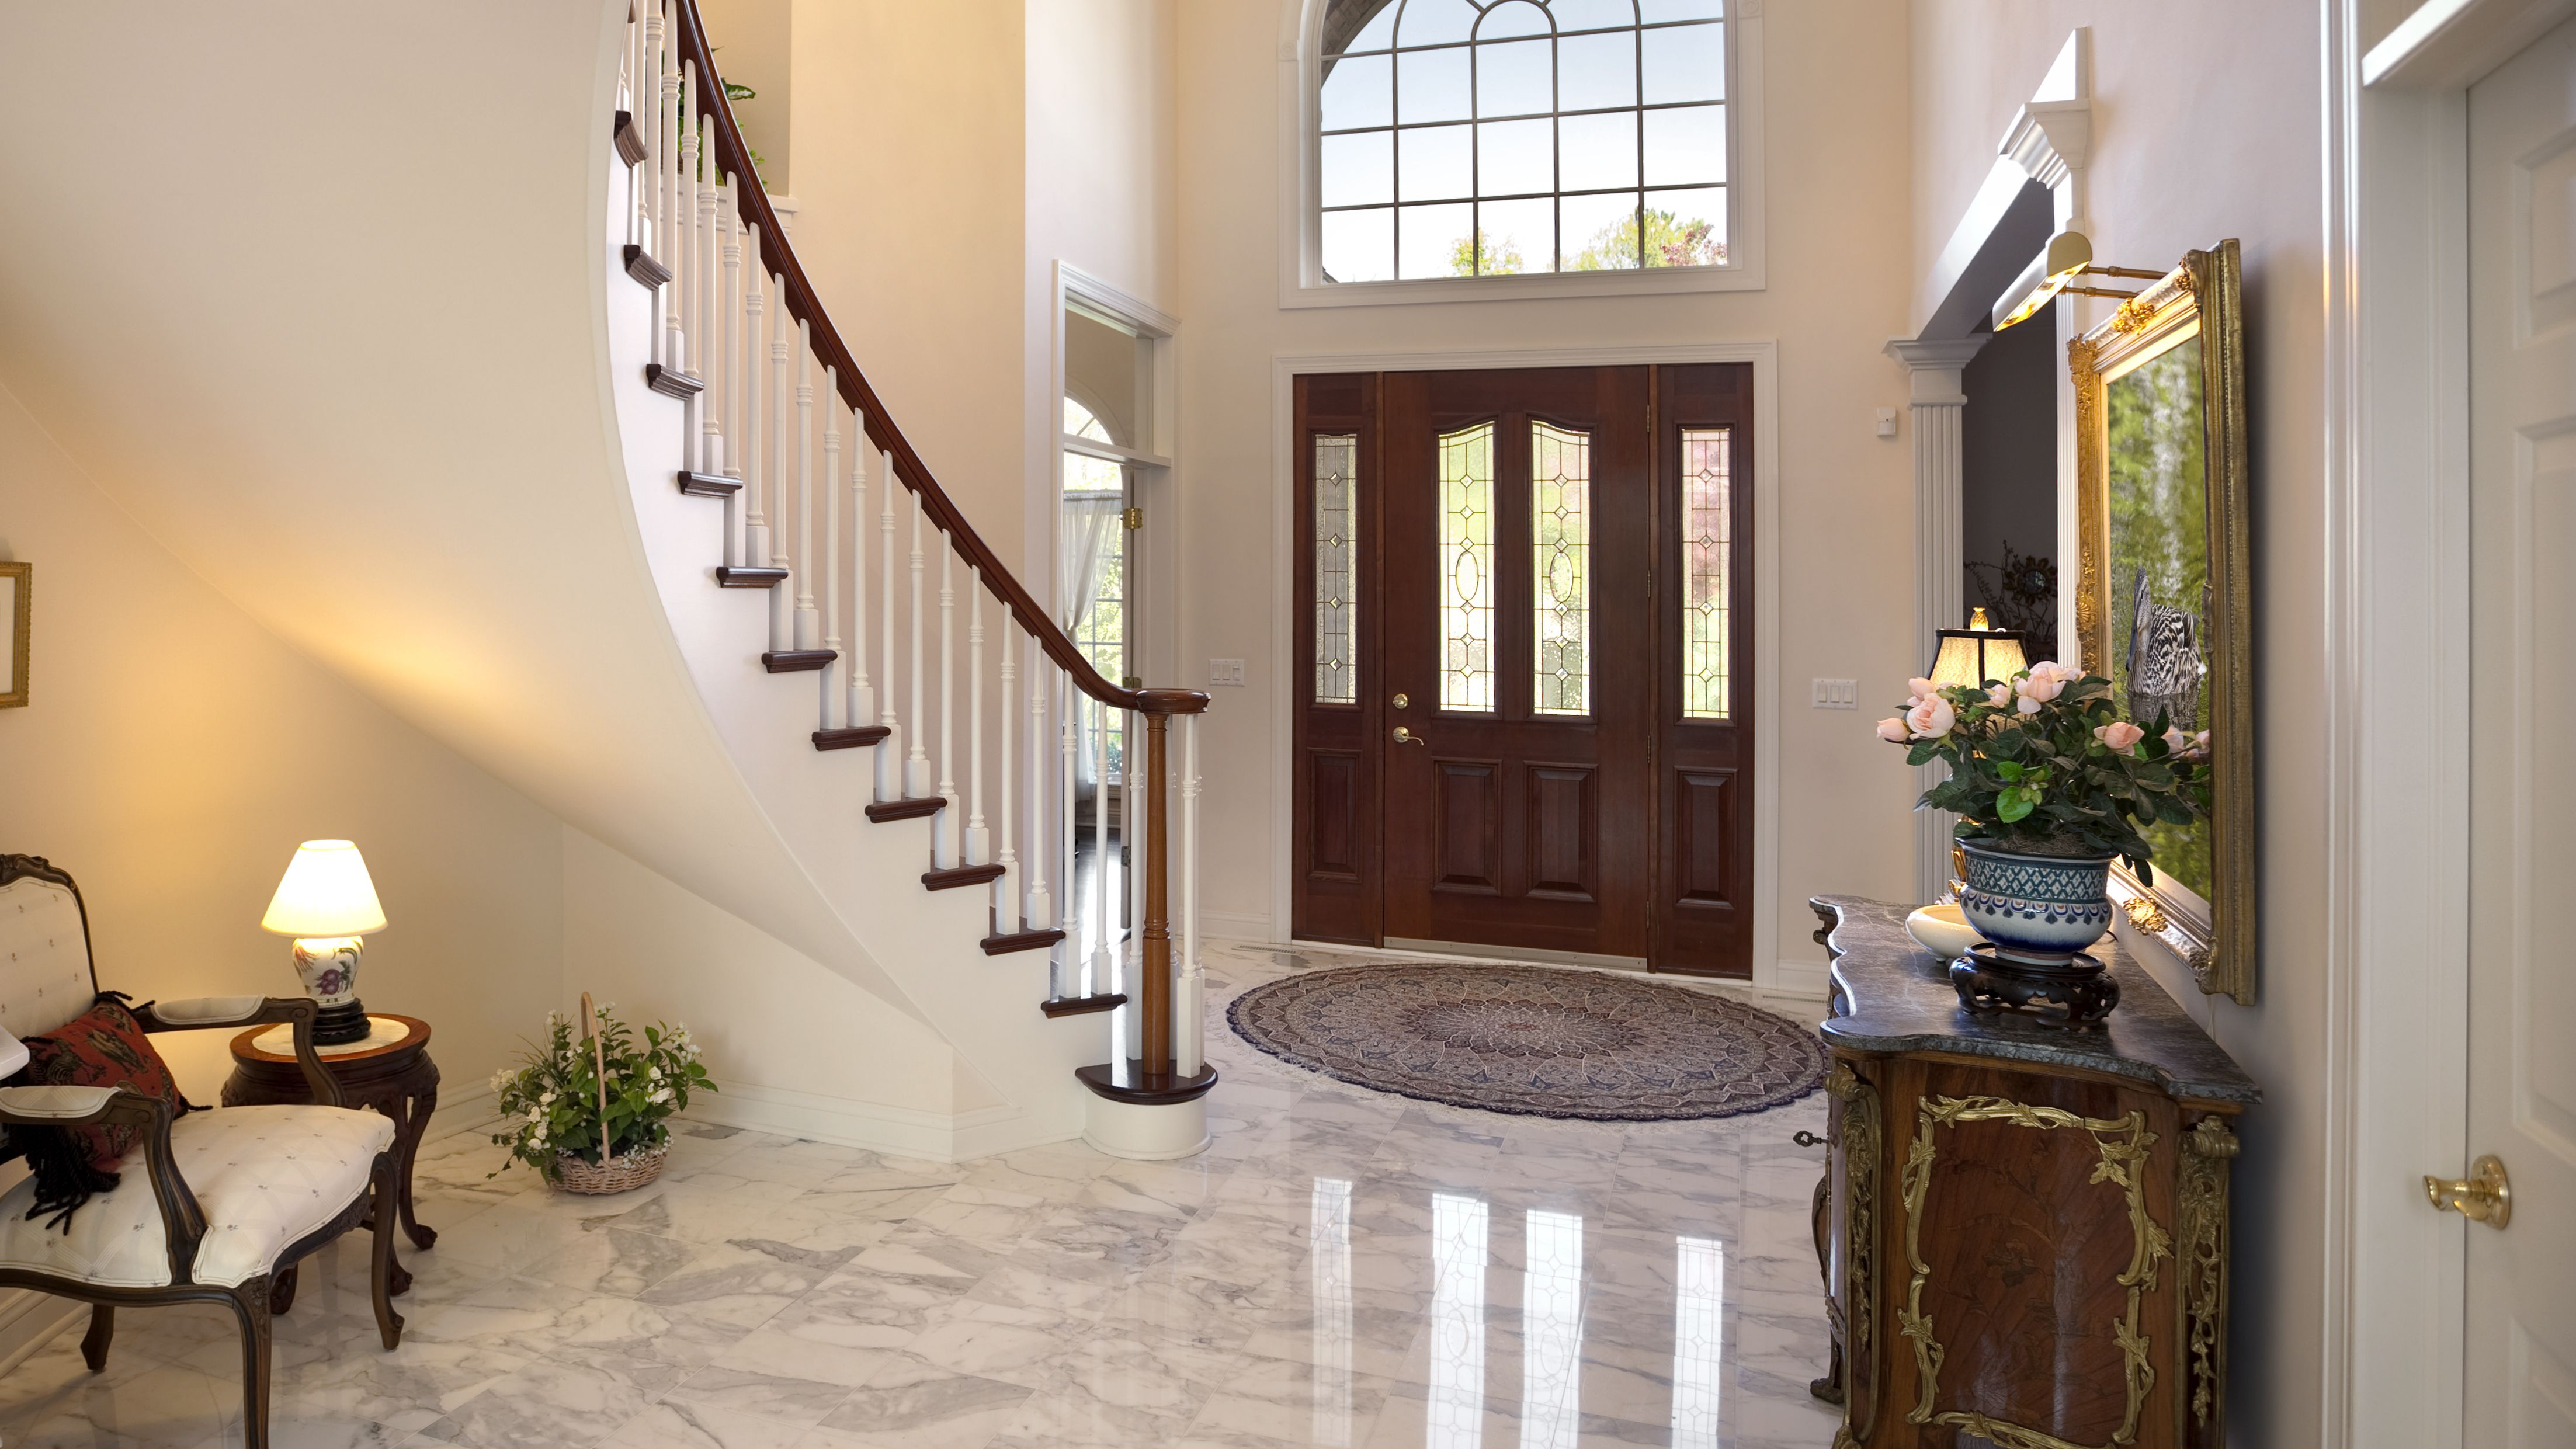 grand-foyer--staircase--chandelier--marble-floor-showcase-home-interior-design-157593982-5c456bbd46e0fb0001aac789